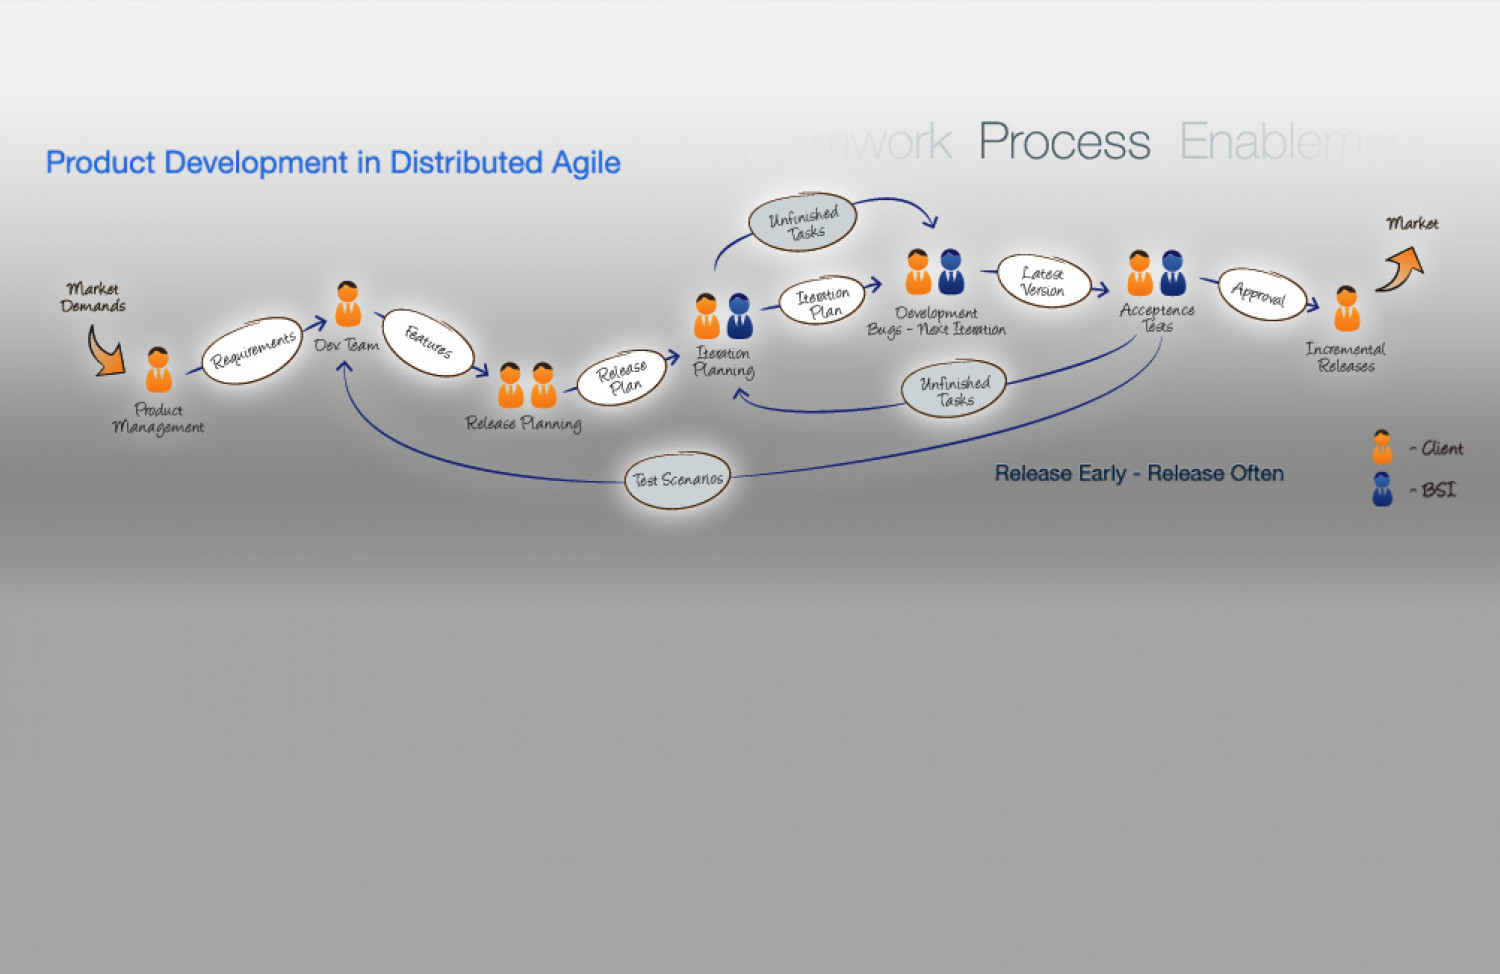 Distributed Agile Process Infographic